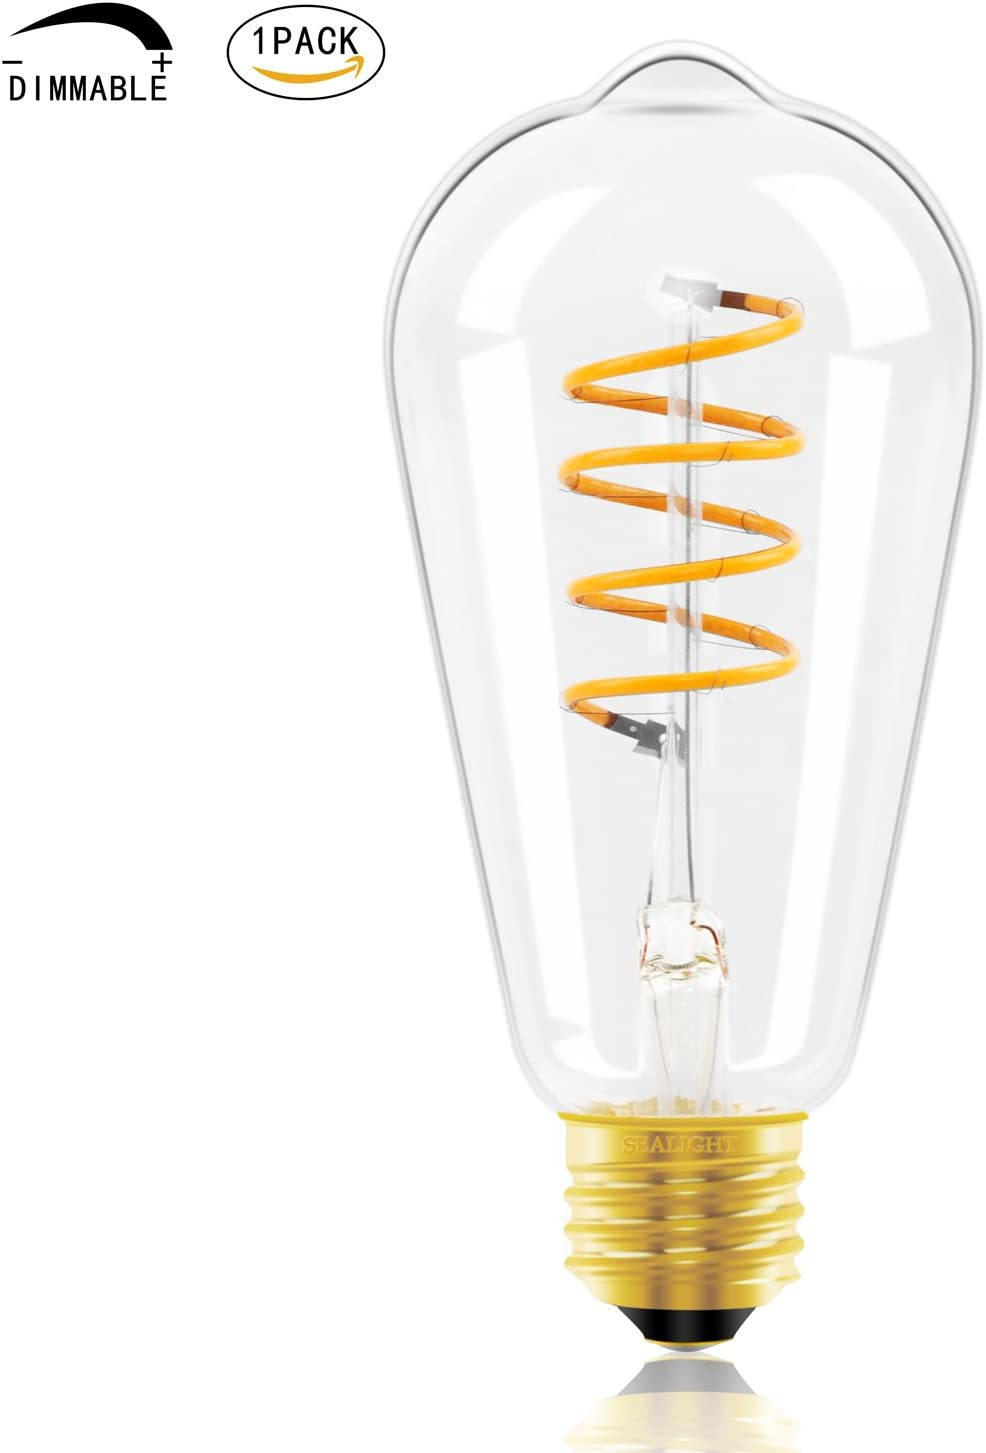 qlee R7S LED J118 118mm Dimmable Bulb 30W Day Light 6000k AC120V 3000LM Double J